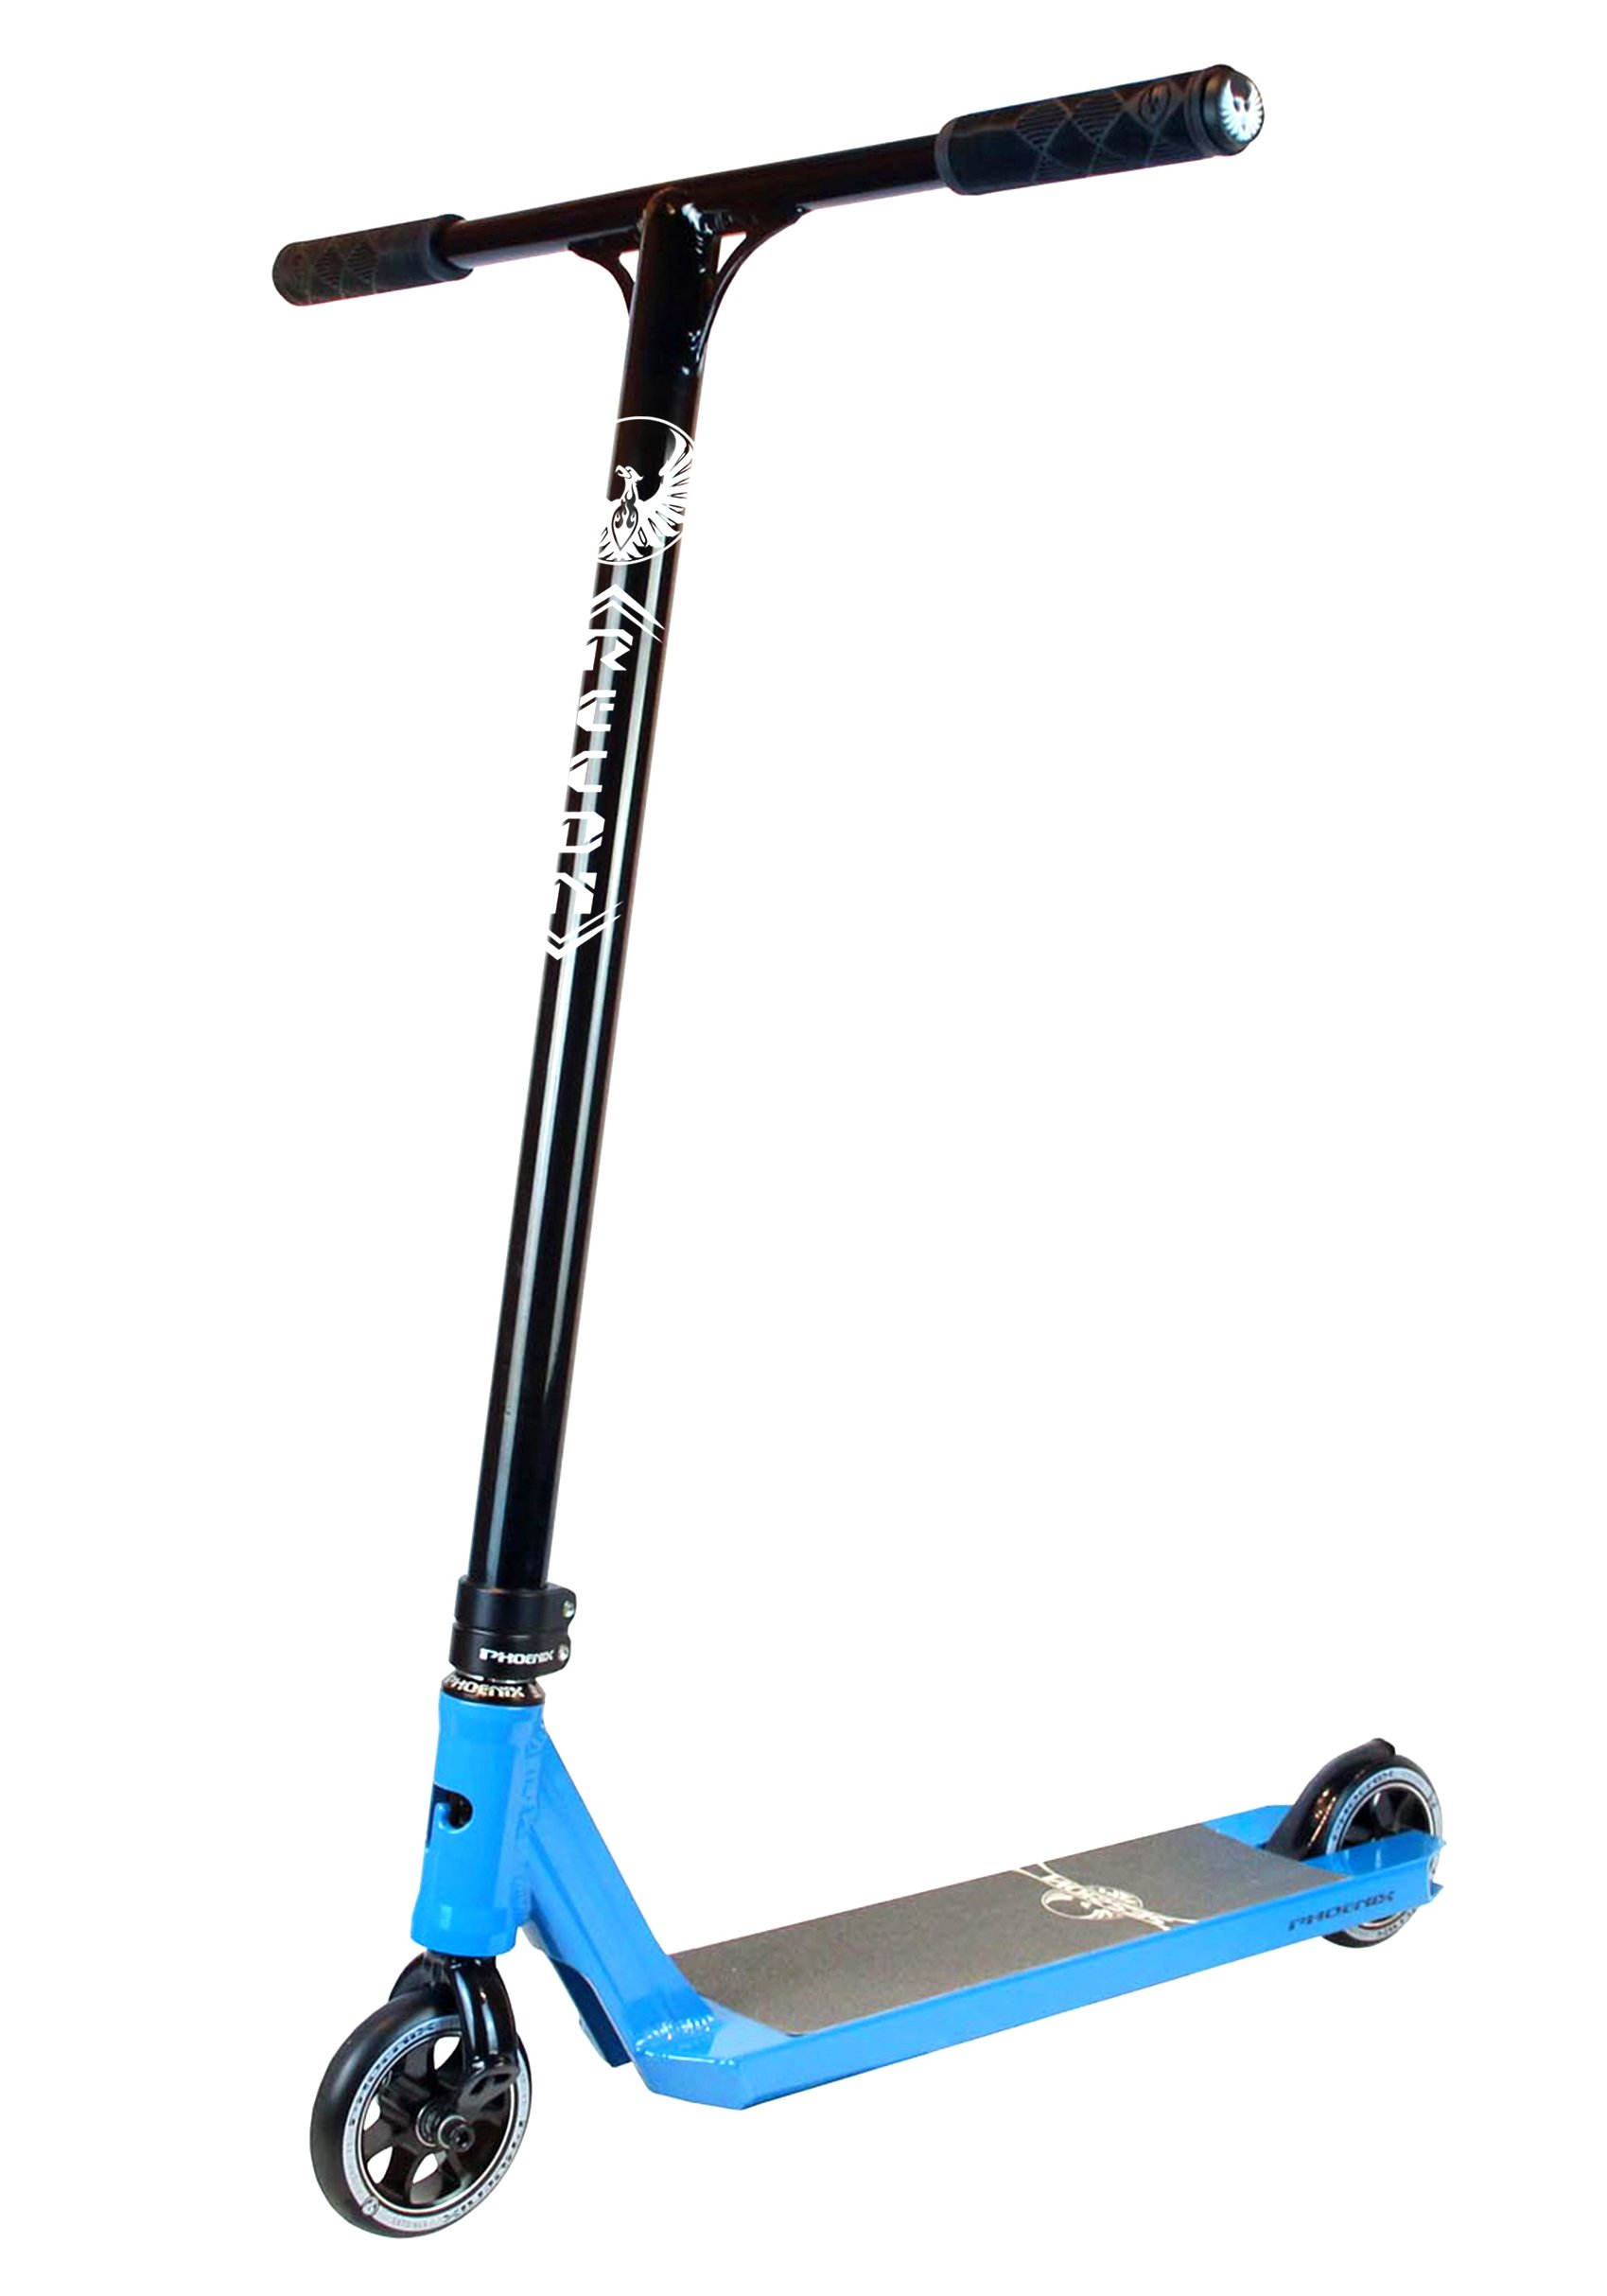 Phoenix Session Pro Scooter (Teal) by Phoenix Pro Scooters